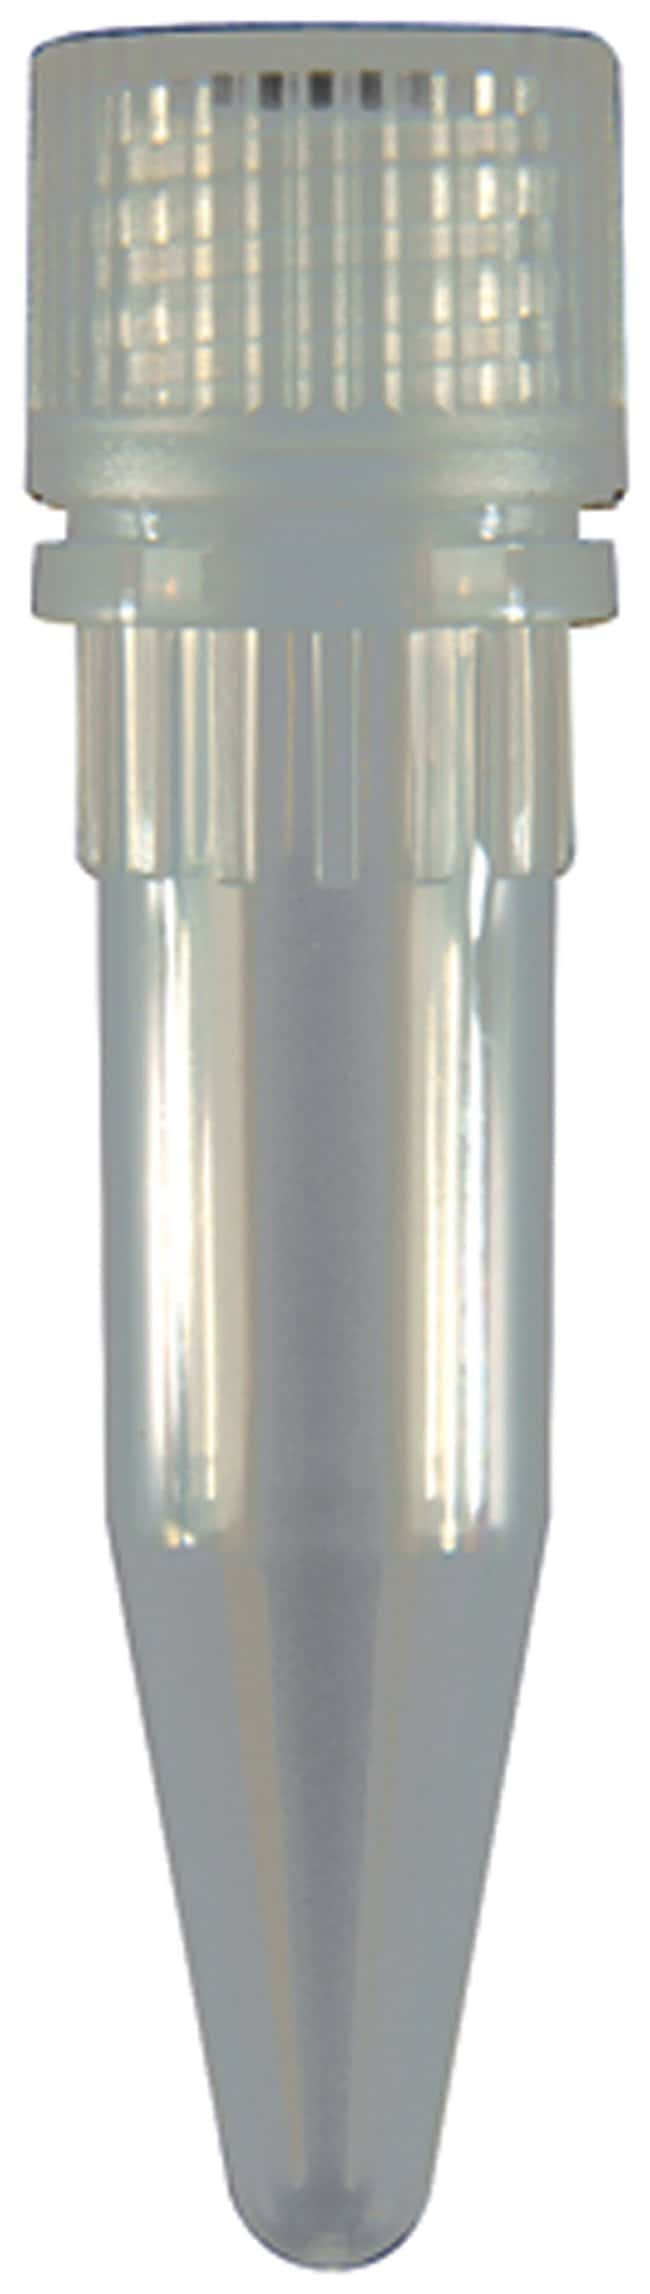 Axygen™ 1.5 mL Conical Screw Cap Tubes